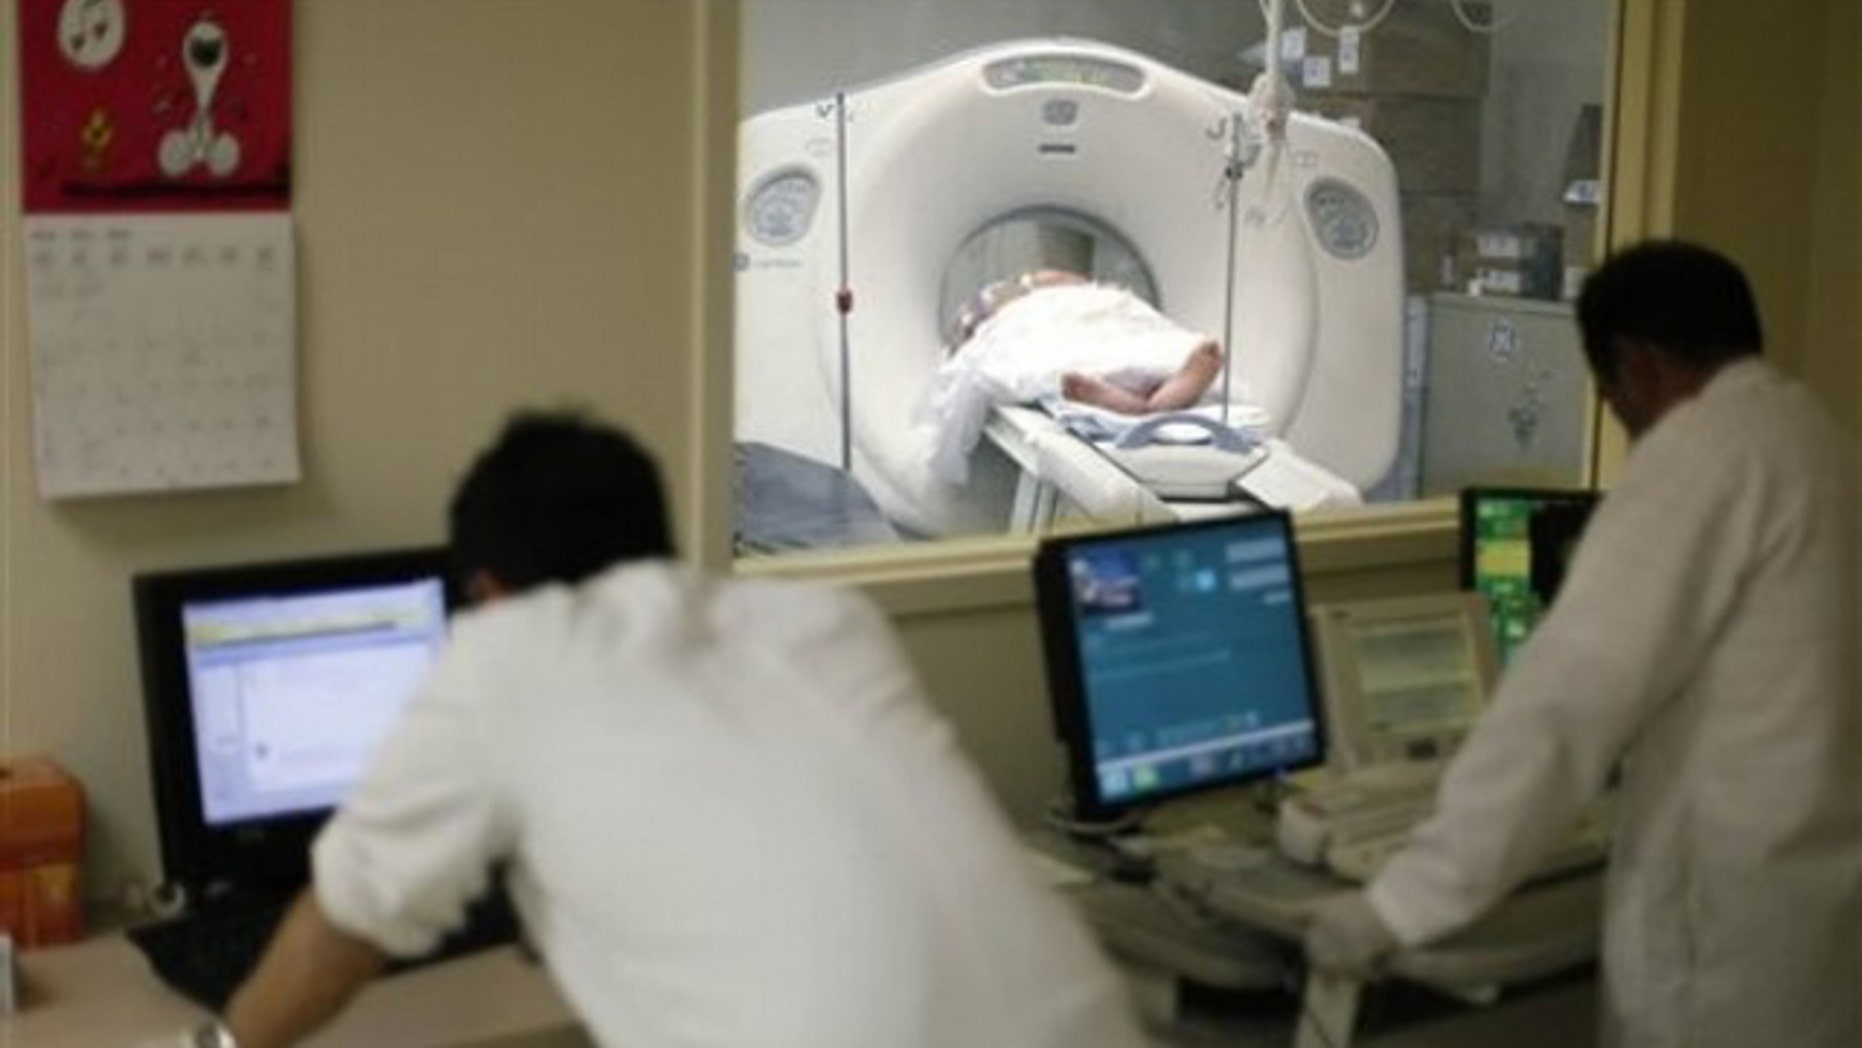 In this May 4 photo, a CT is performed on a patient at Cook County Stroger Hospital in Chicago.